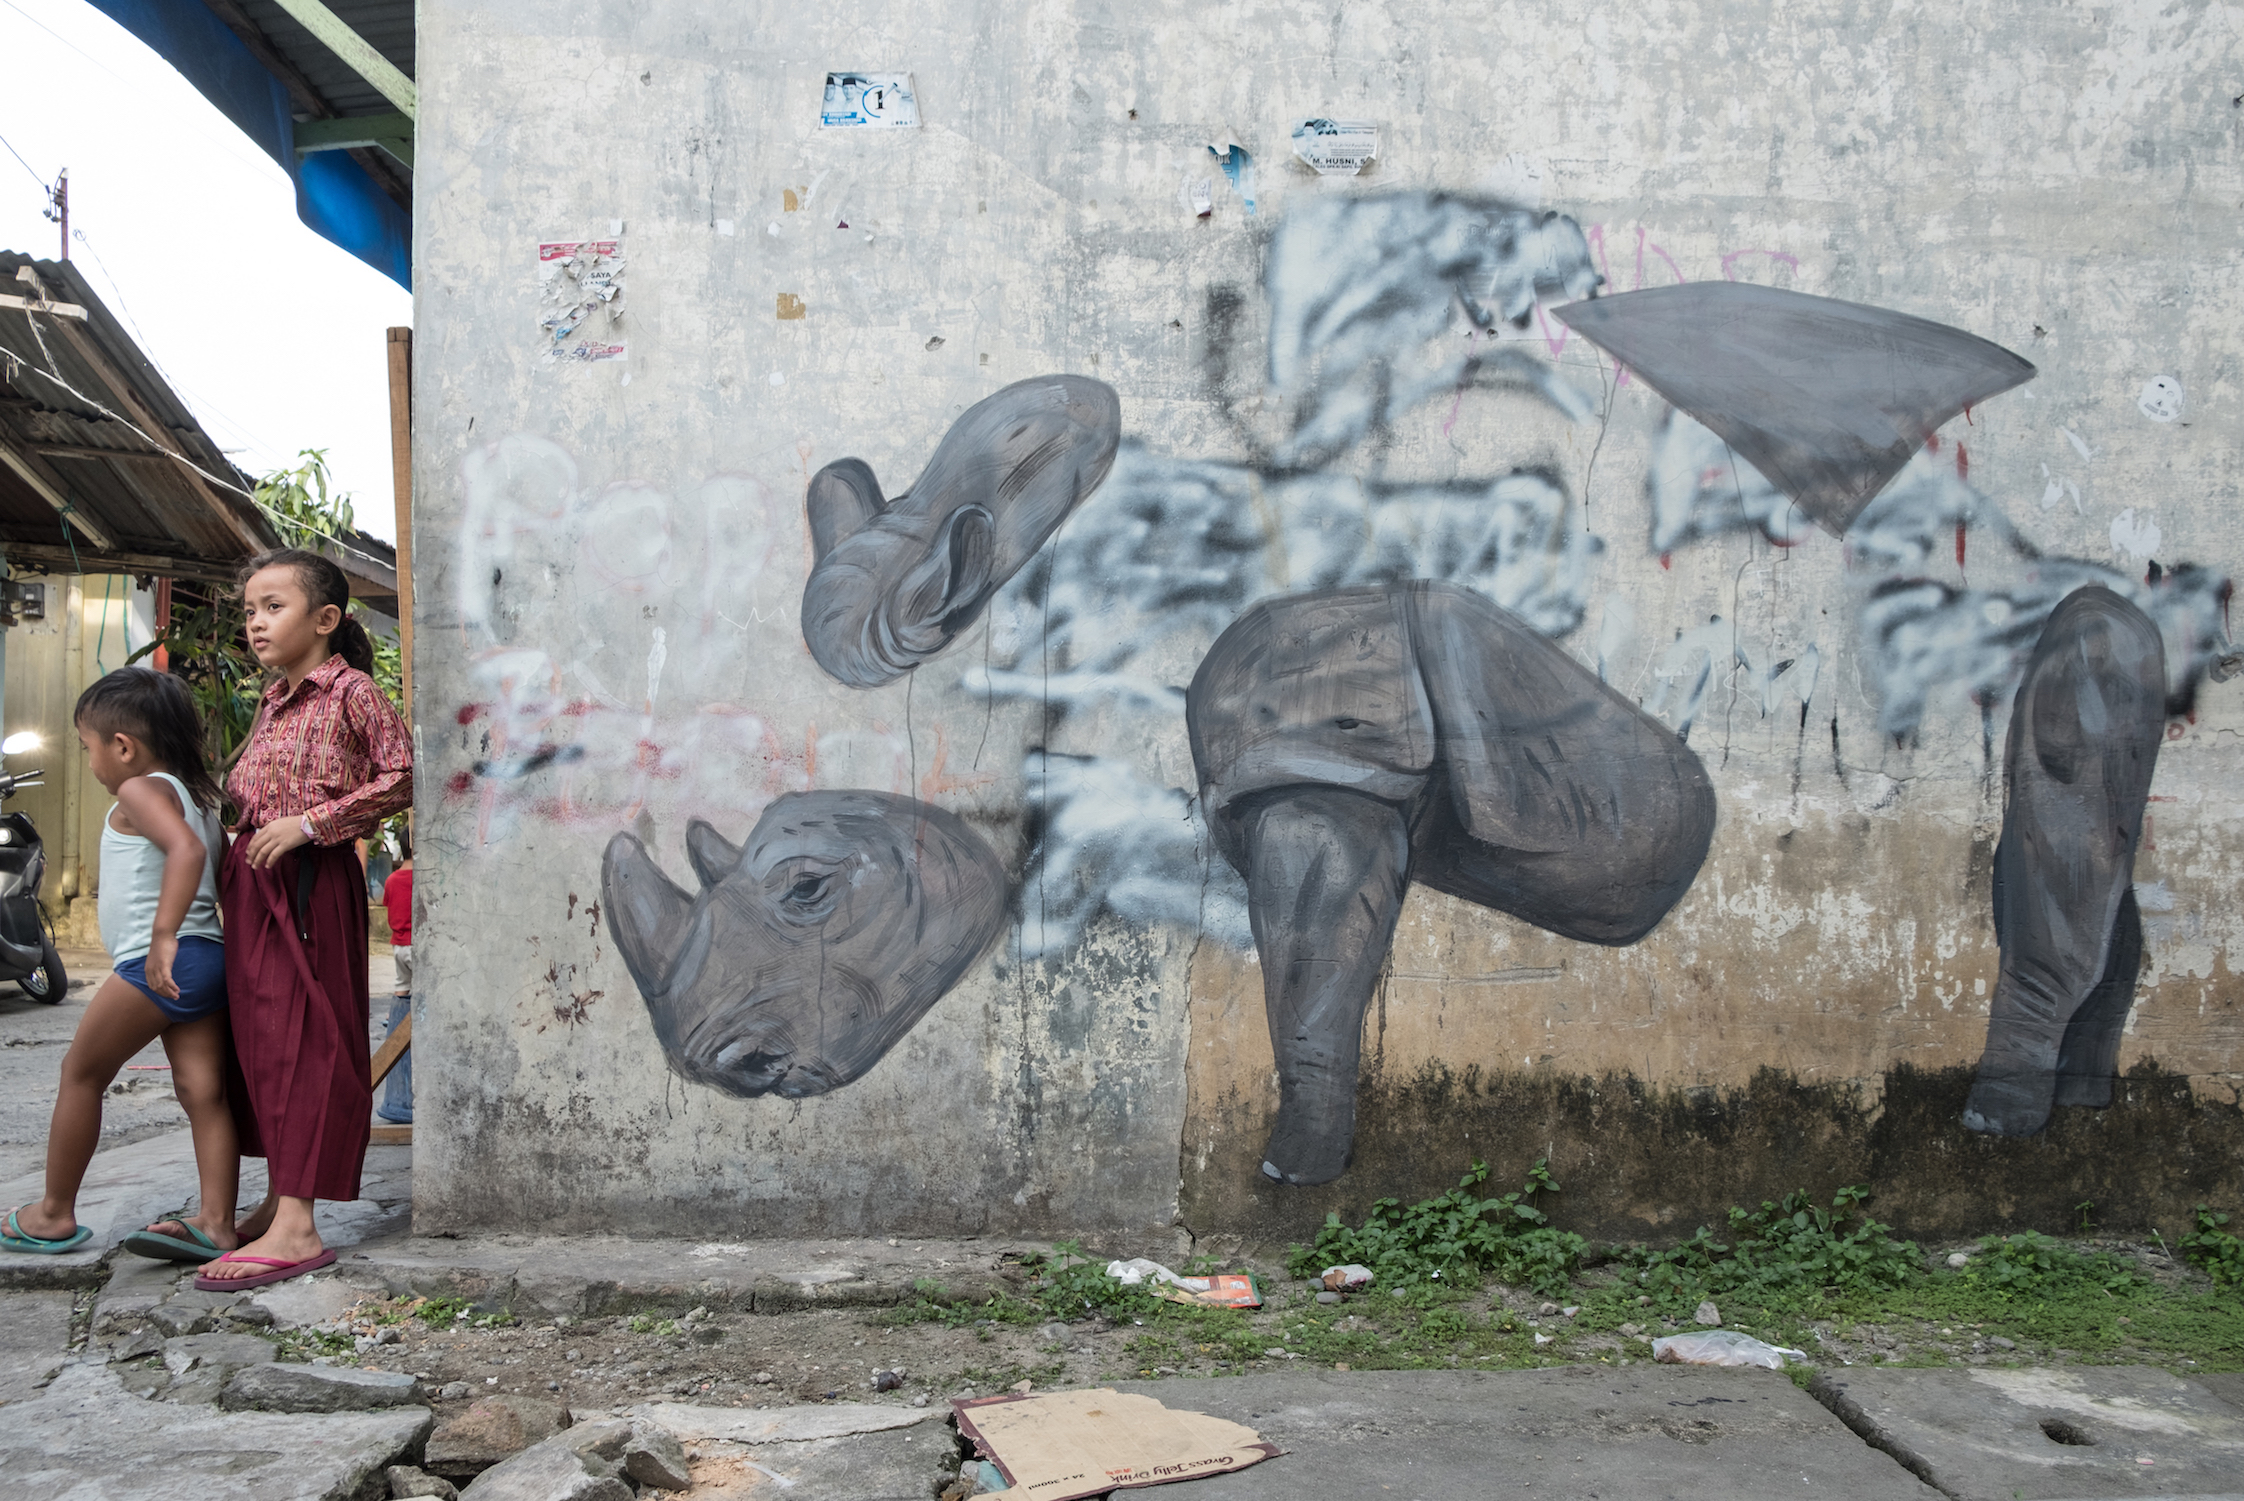 Escif Rhino splash and Burn 2019 Photo Credit Ernest Zacharevic .jpg